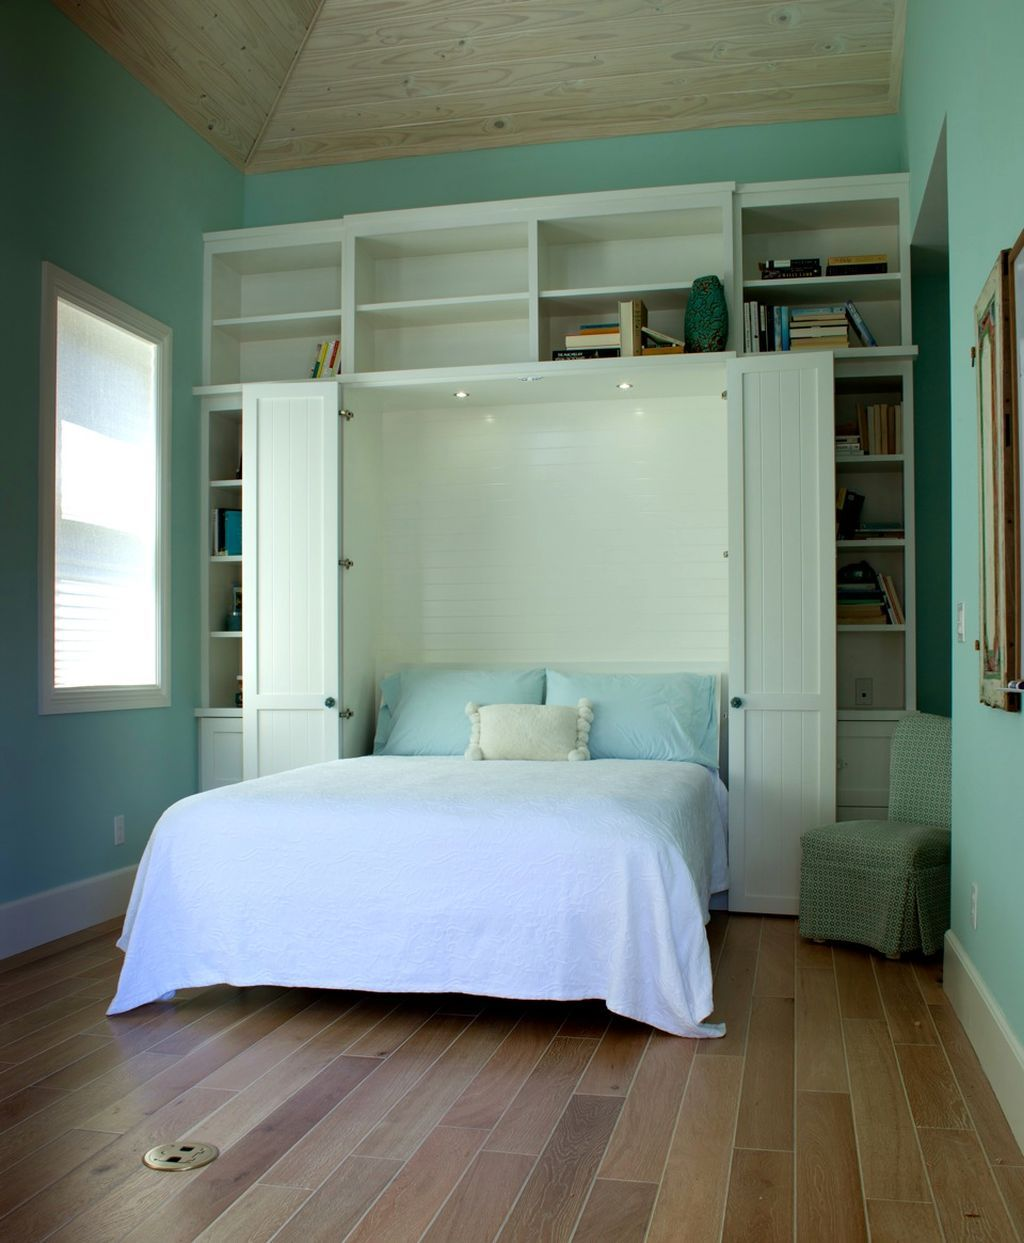 murphy bed murphy bed design ideas for small rooms in blue - Murphy Bed Design Ideas